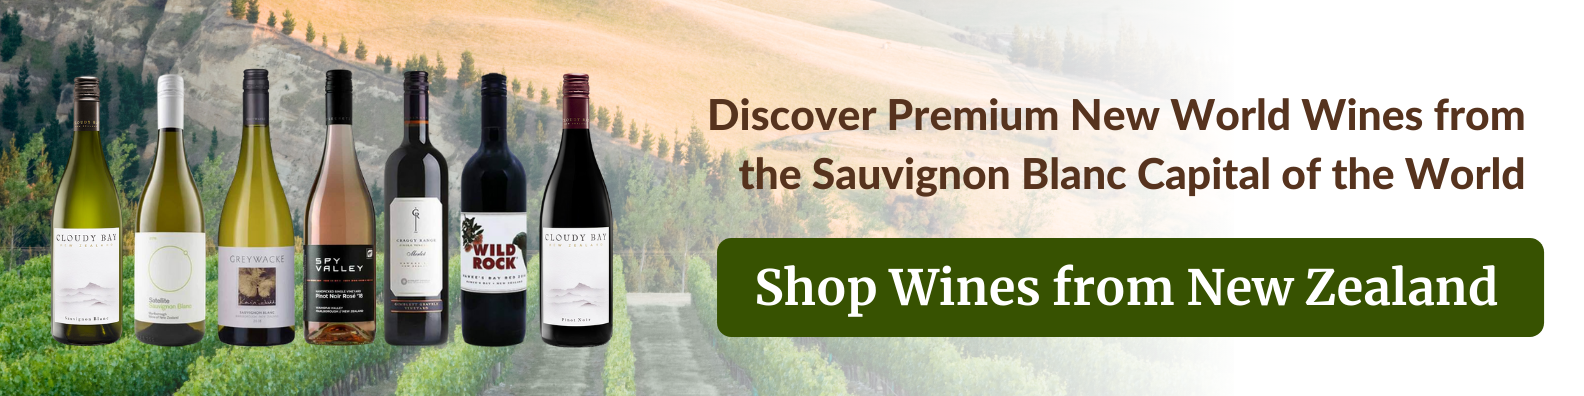 shop new zealand wines at best prices in philippines